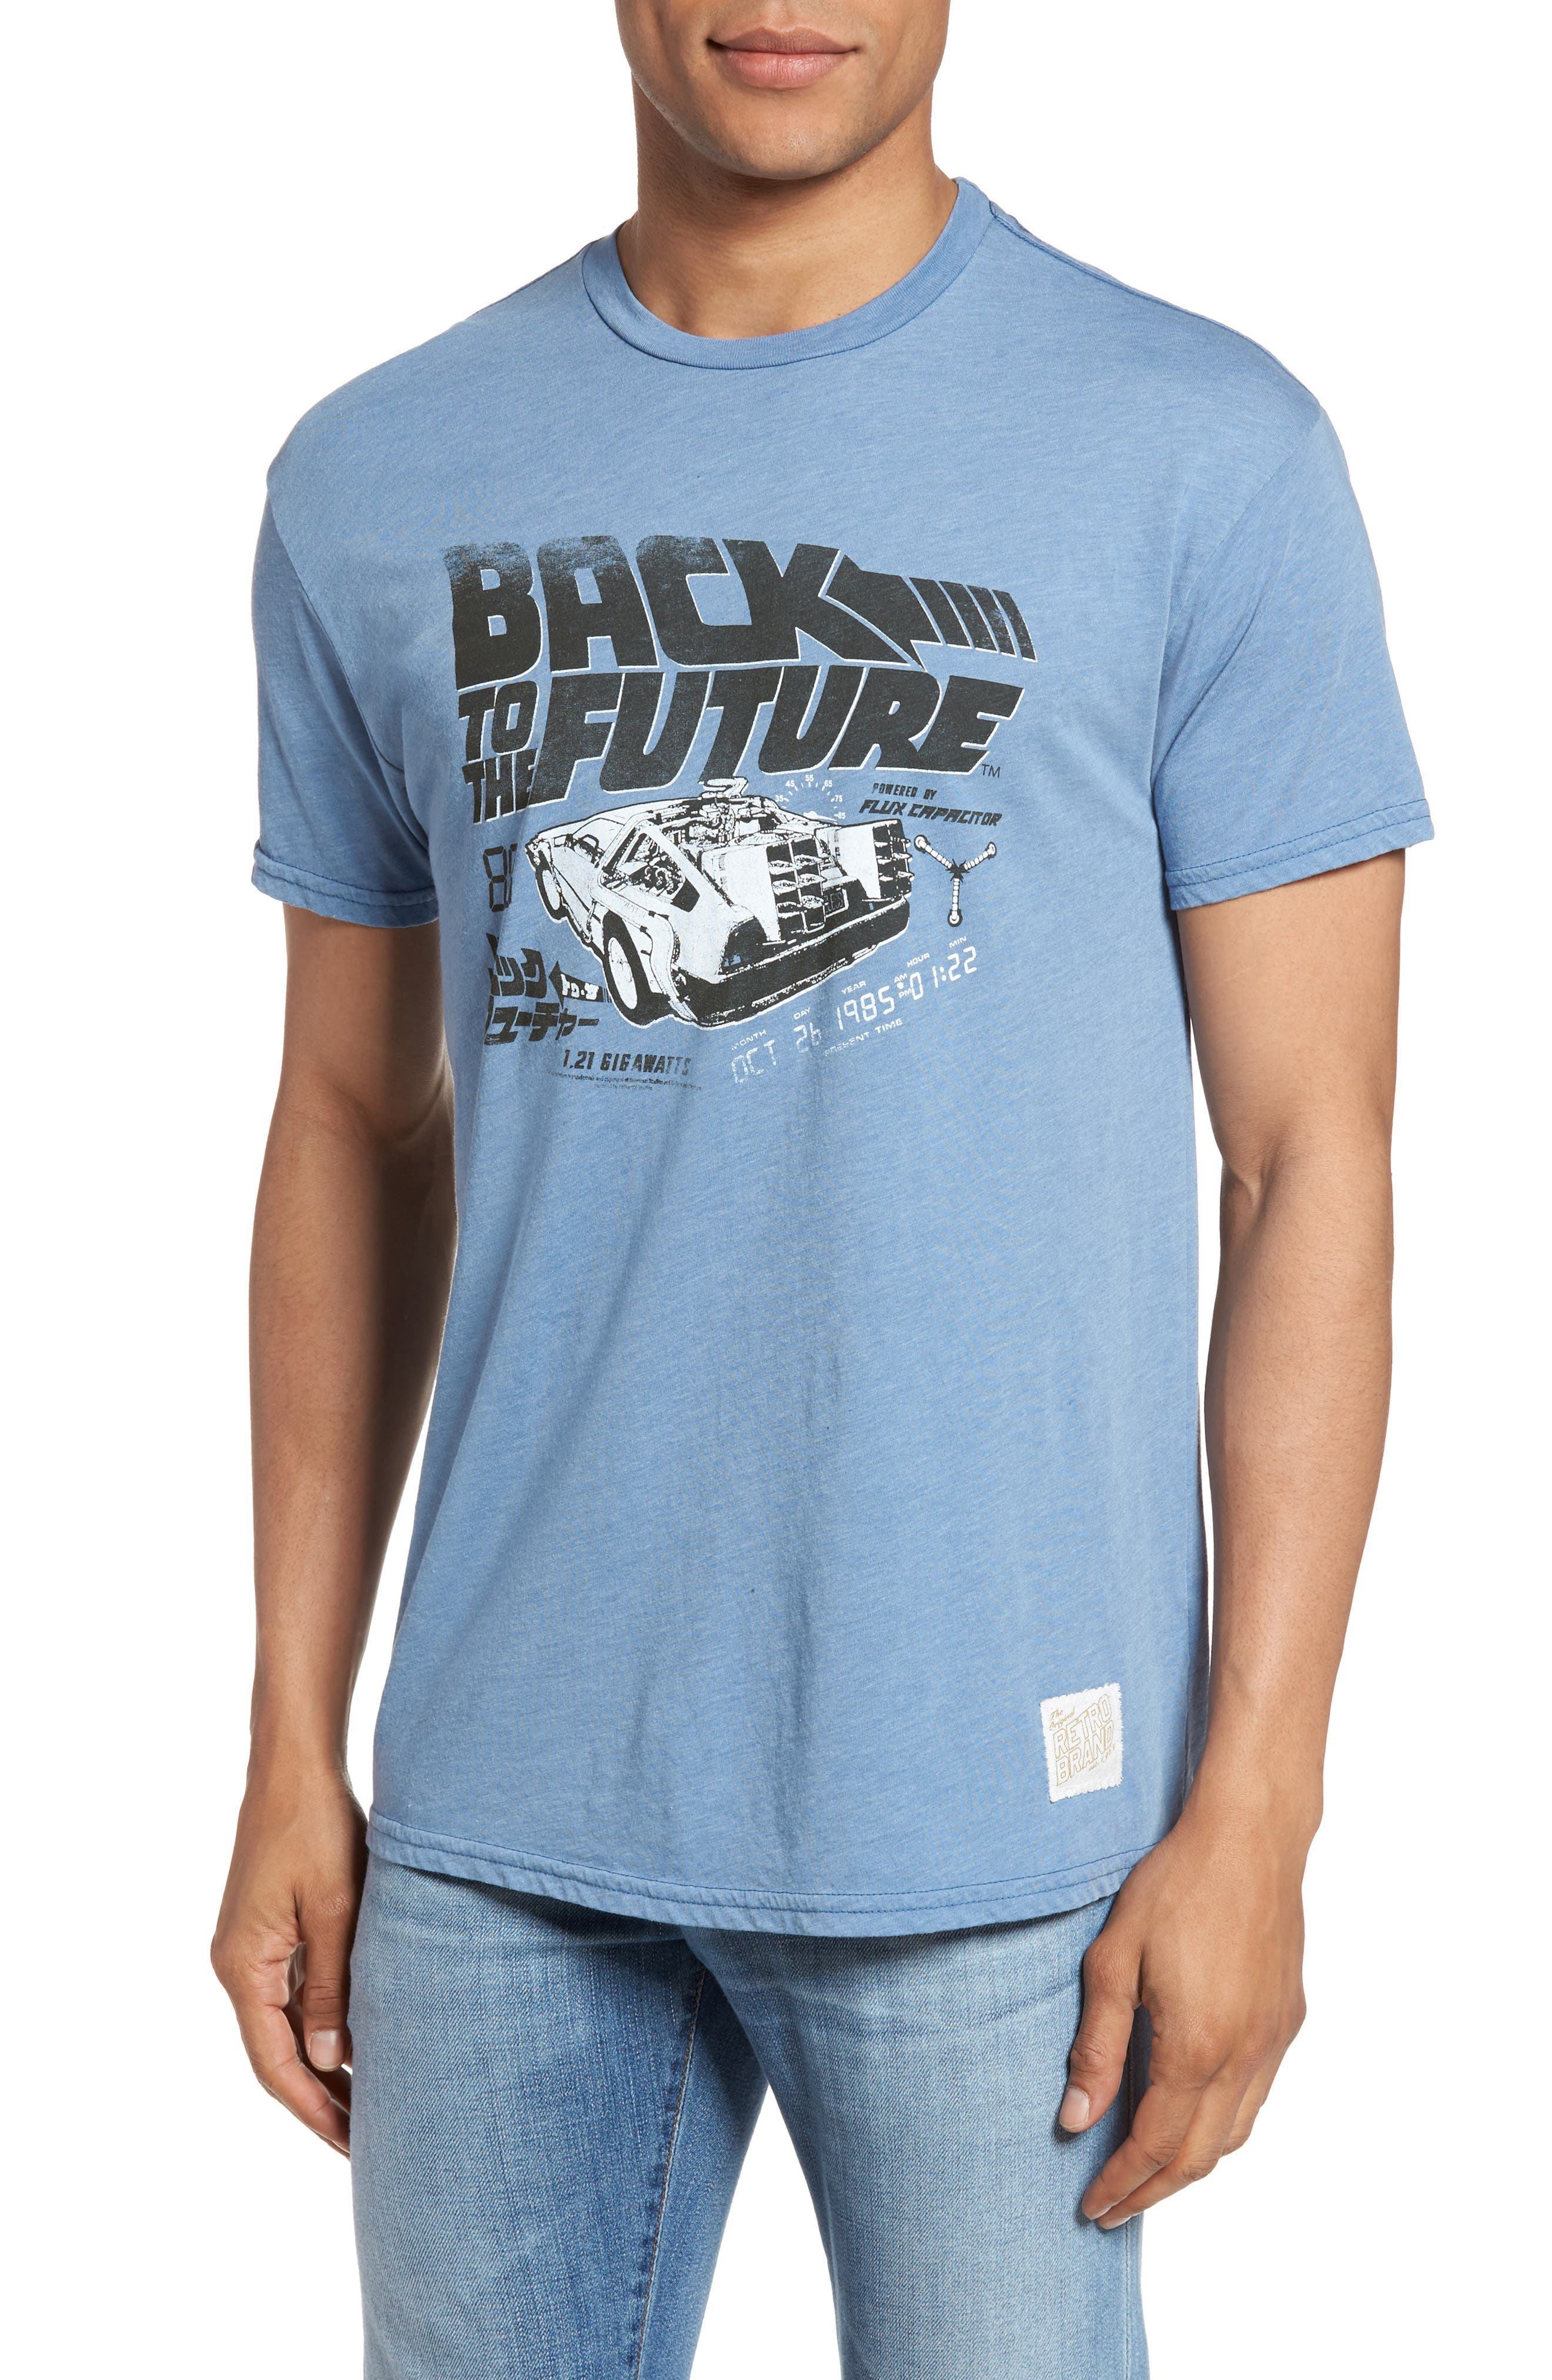 Main Image - Retro Brand Back to the Future Graphic T-Shirt